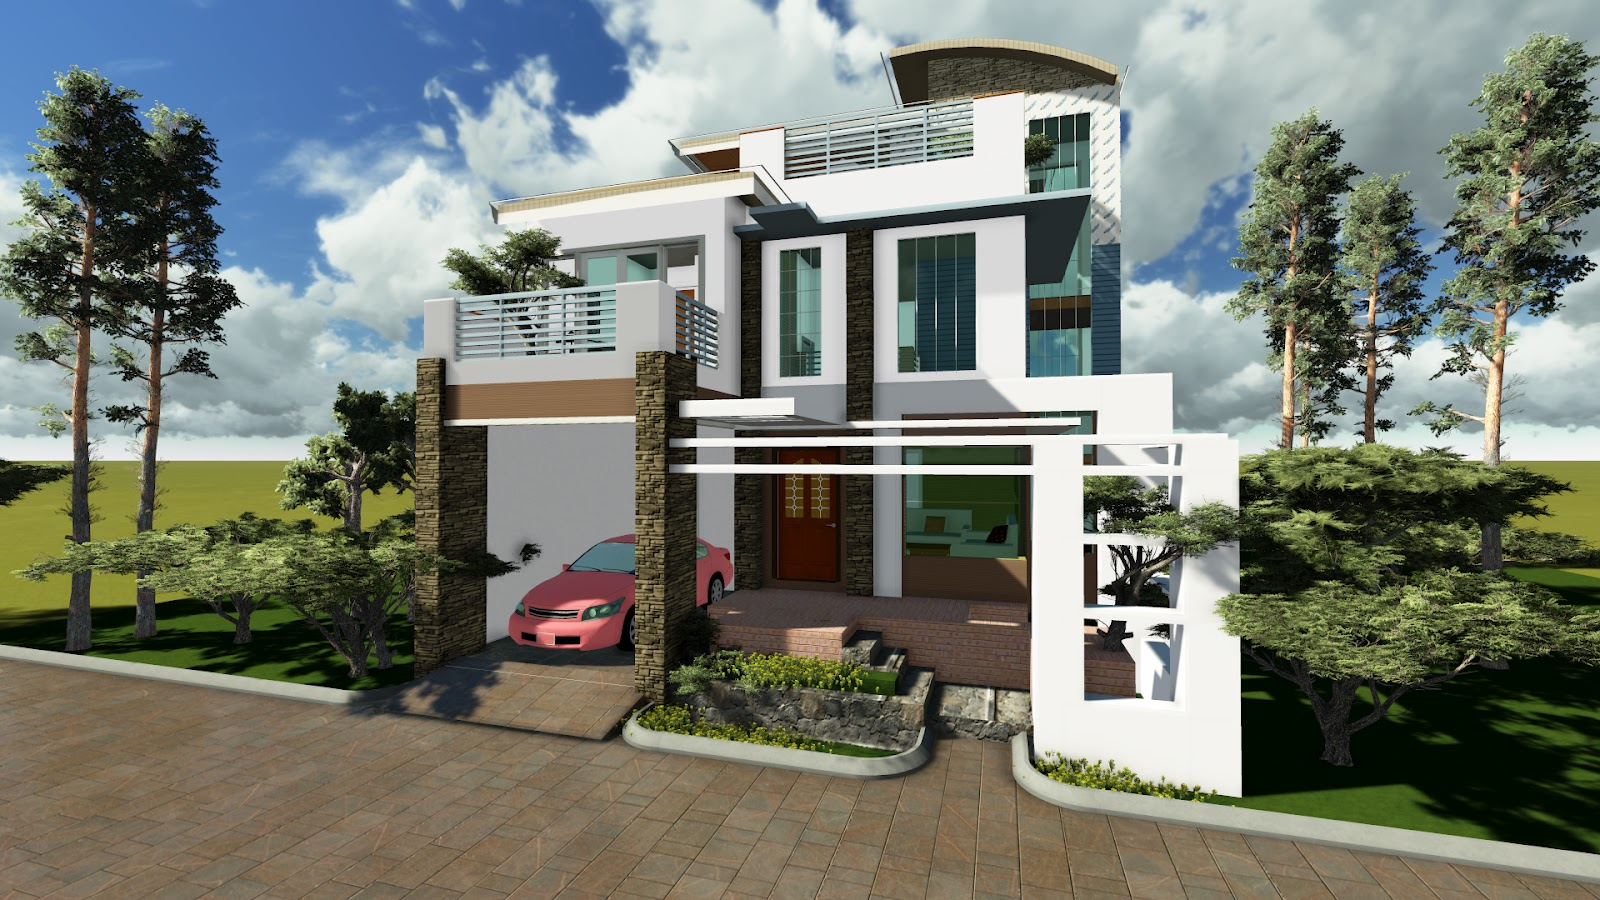 House architecture design in philippines 2017 2018 for Modern house design 2018 philippines